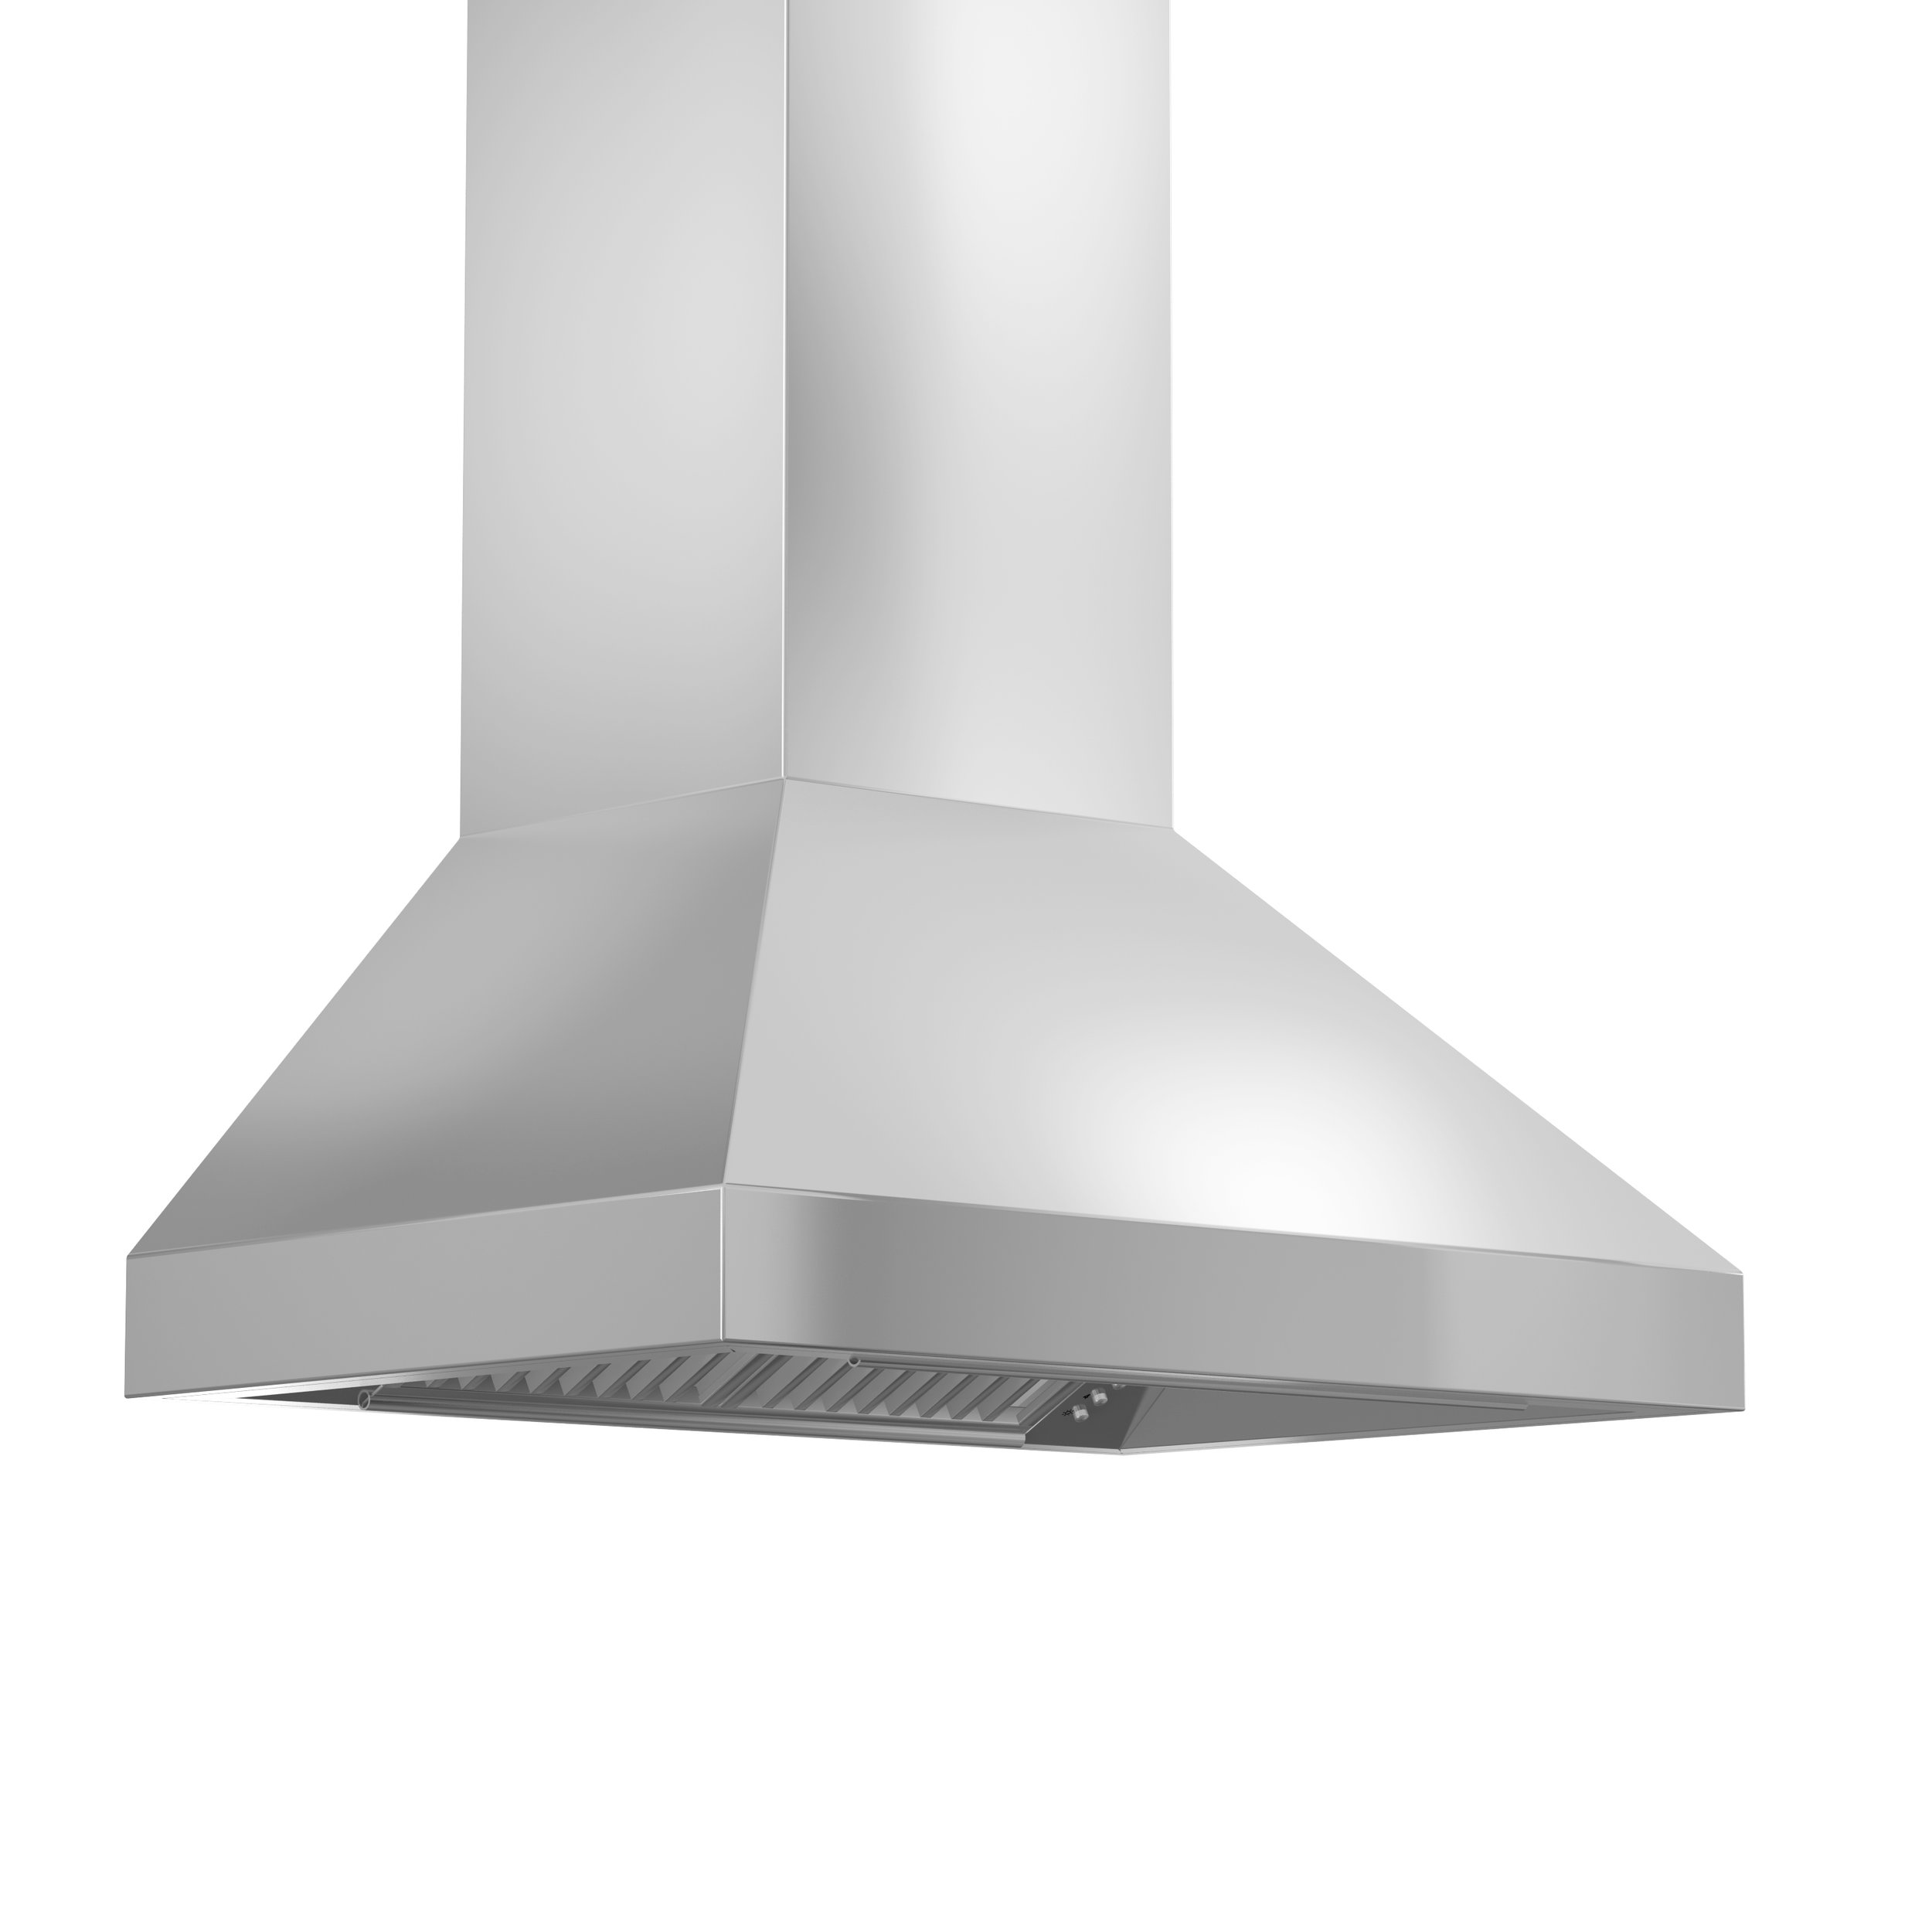 zline-stainless-steel-wall-mounted-range-hood-597-main.jpg